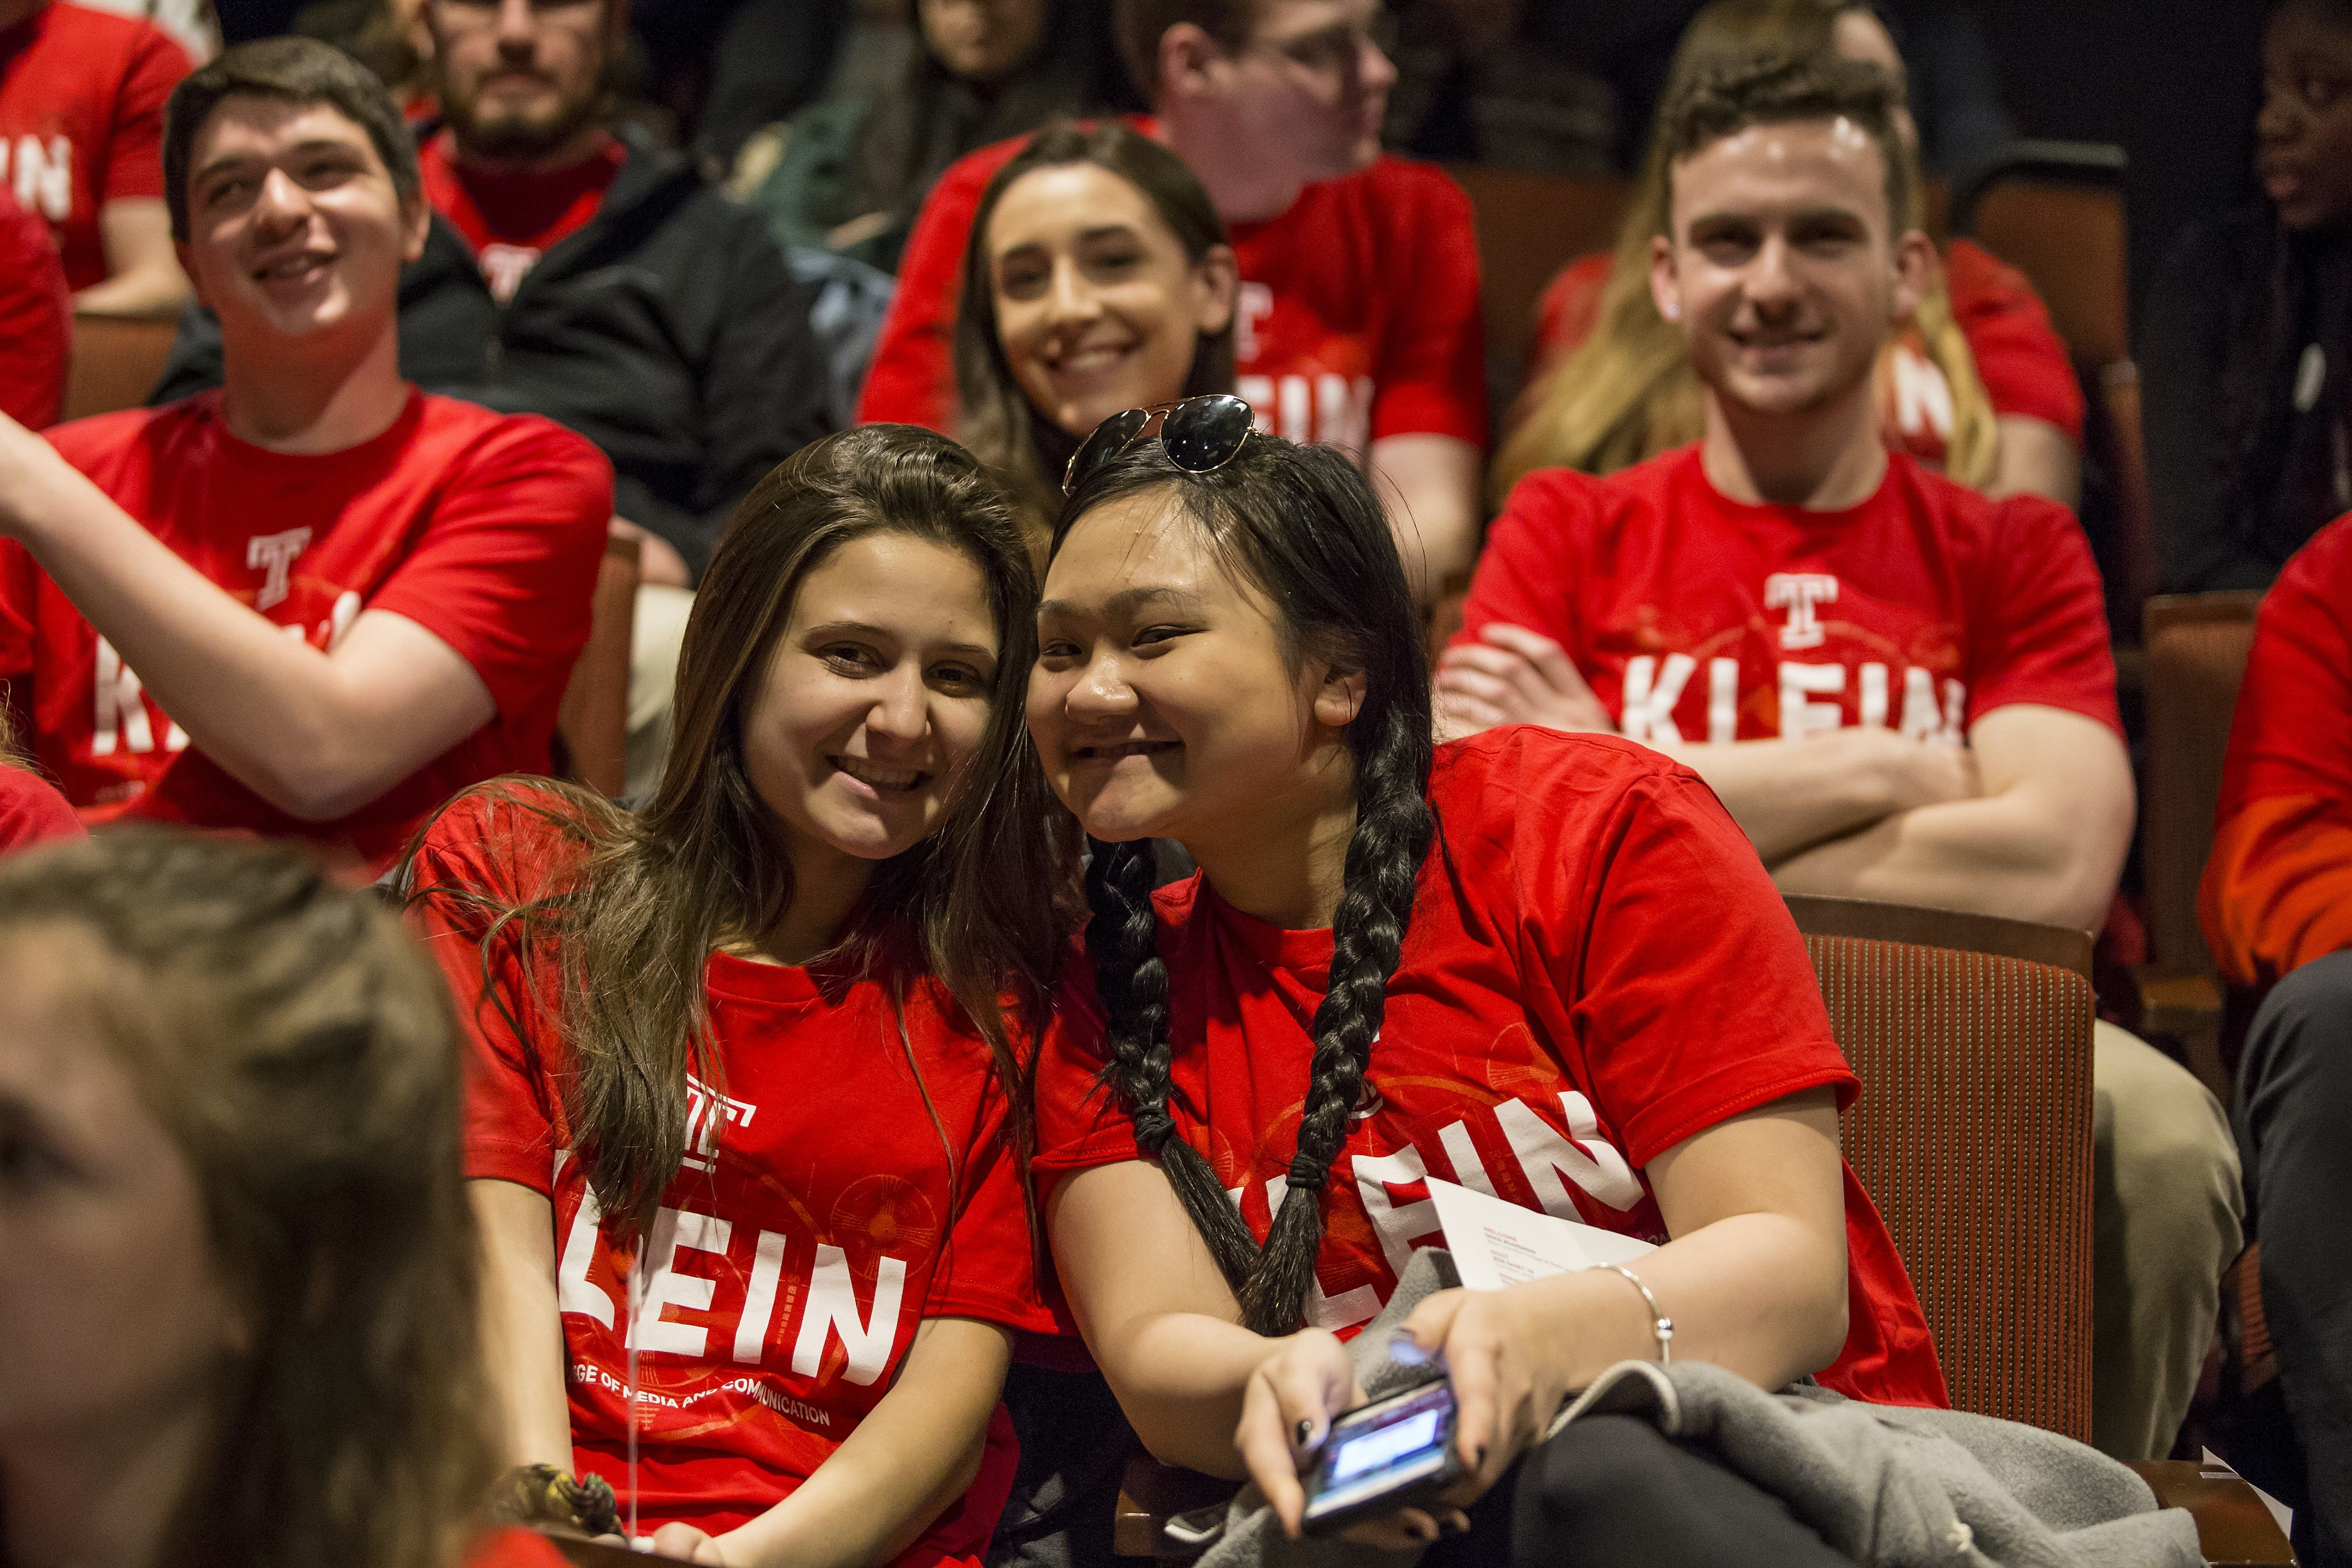 Klein Students join celebration of the naming of Lew Klein College of Media & Communication in March 2017.